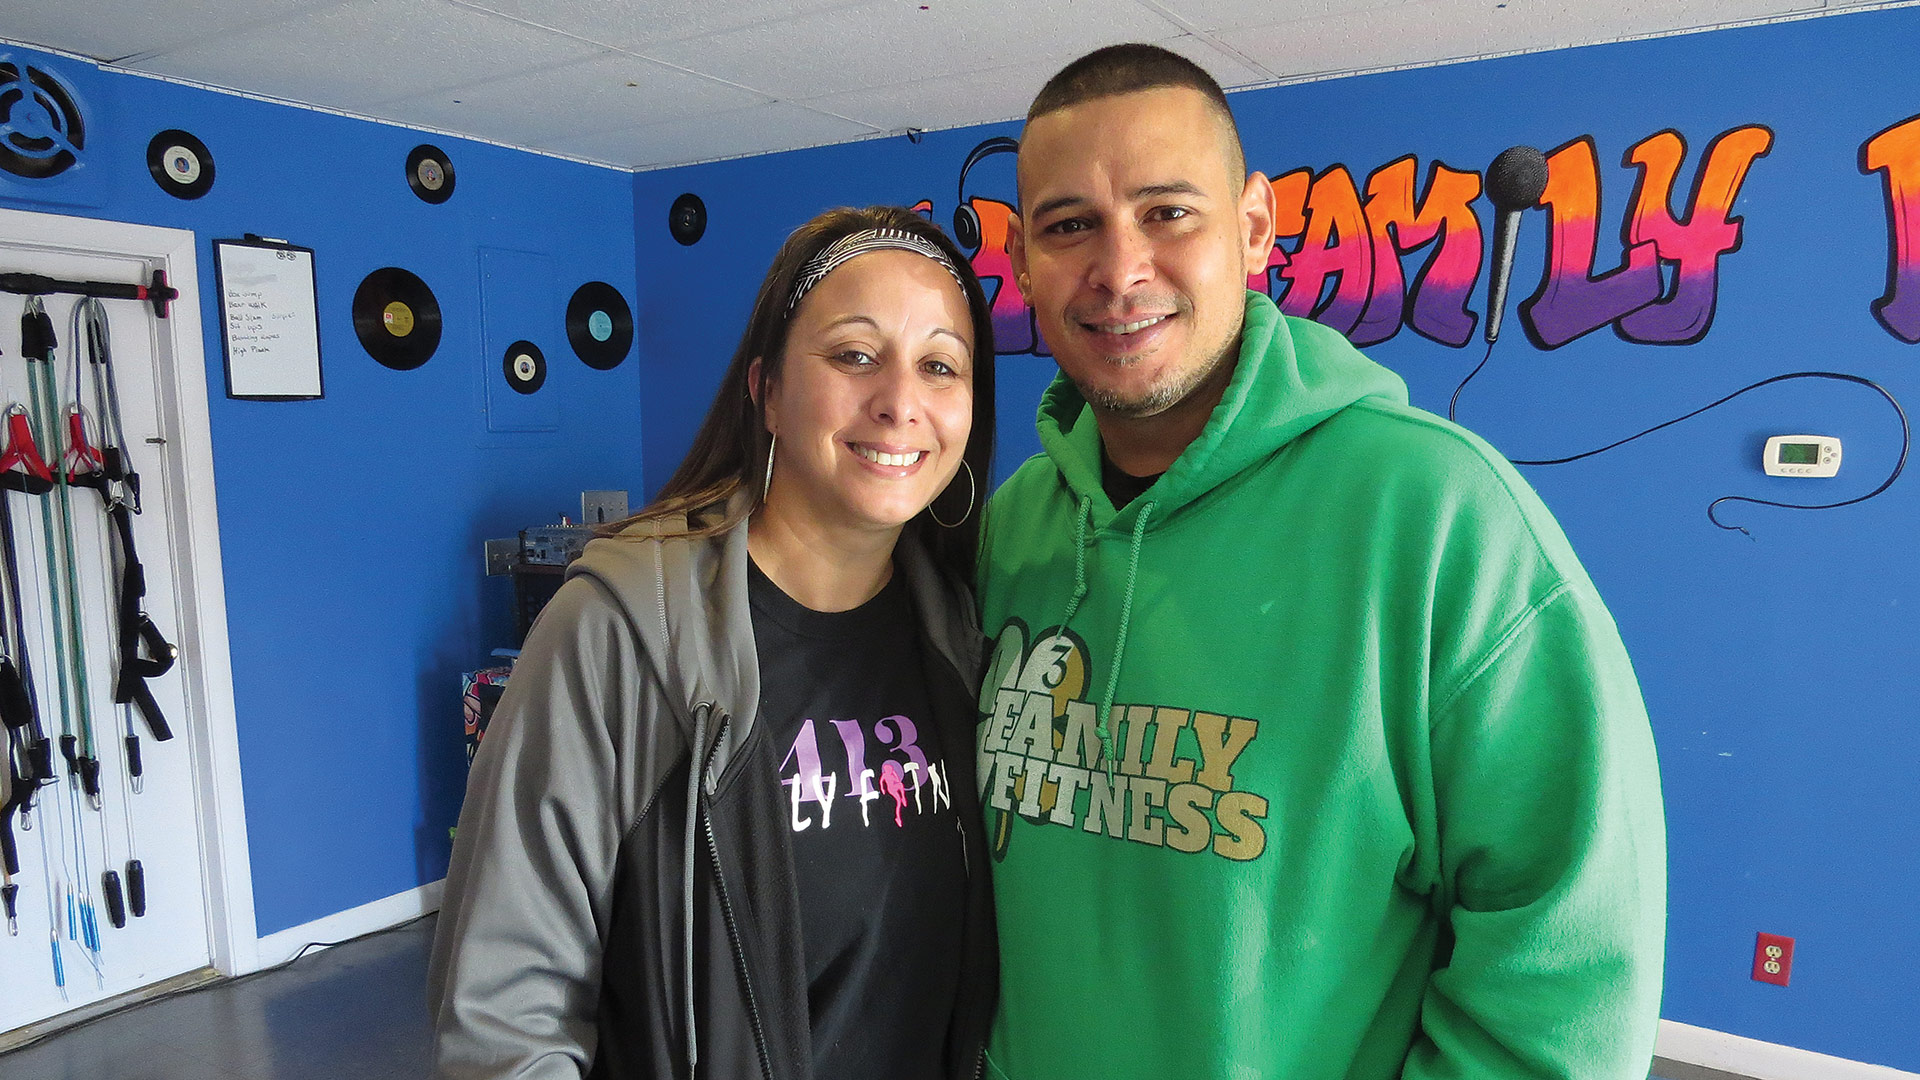 Juan and Elsie Vasquez, owners of 413 Family Fitness